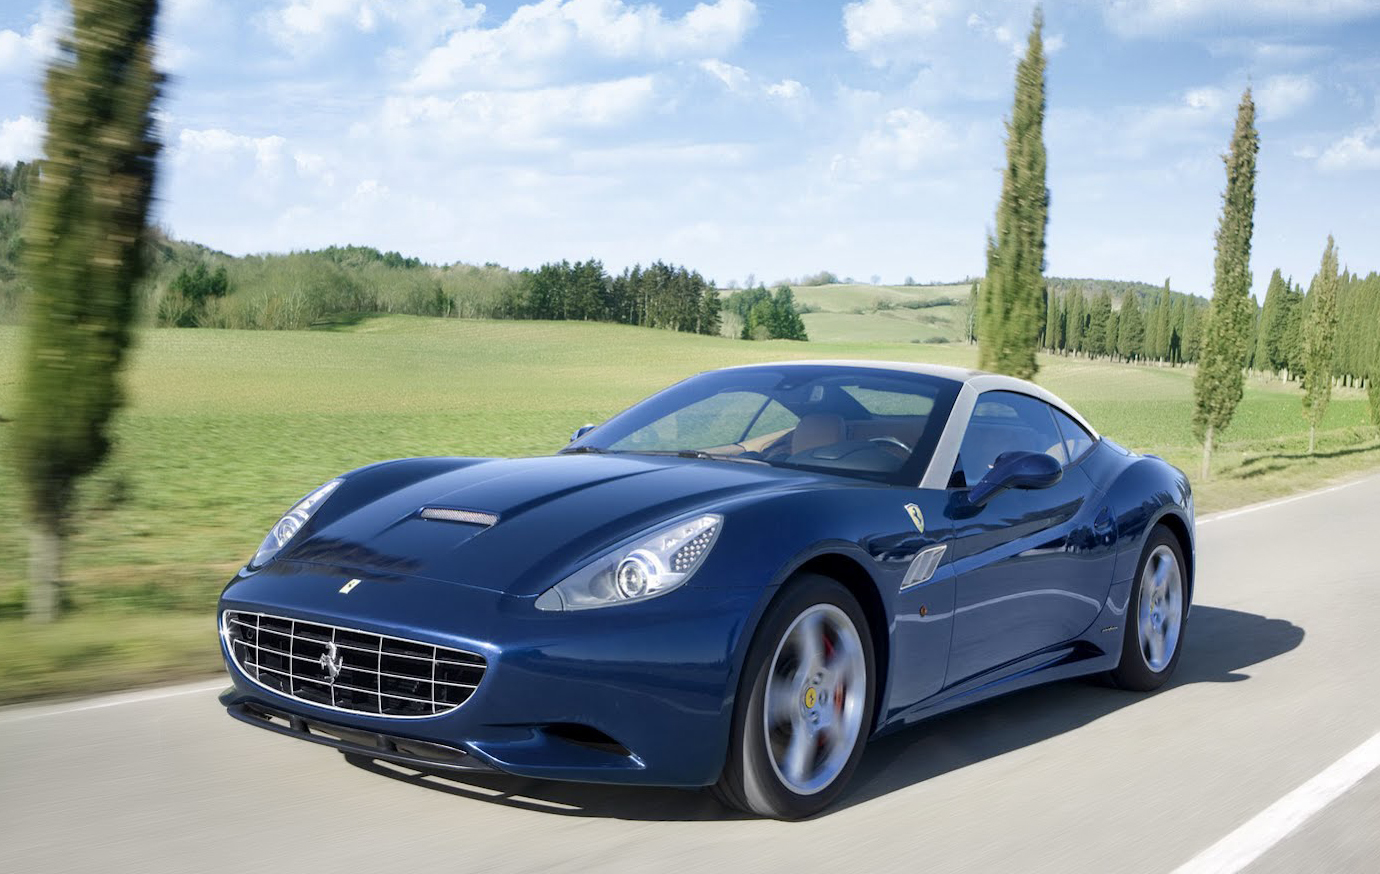 2013 Ferrari California 2013 Ferrari California unveiled